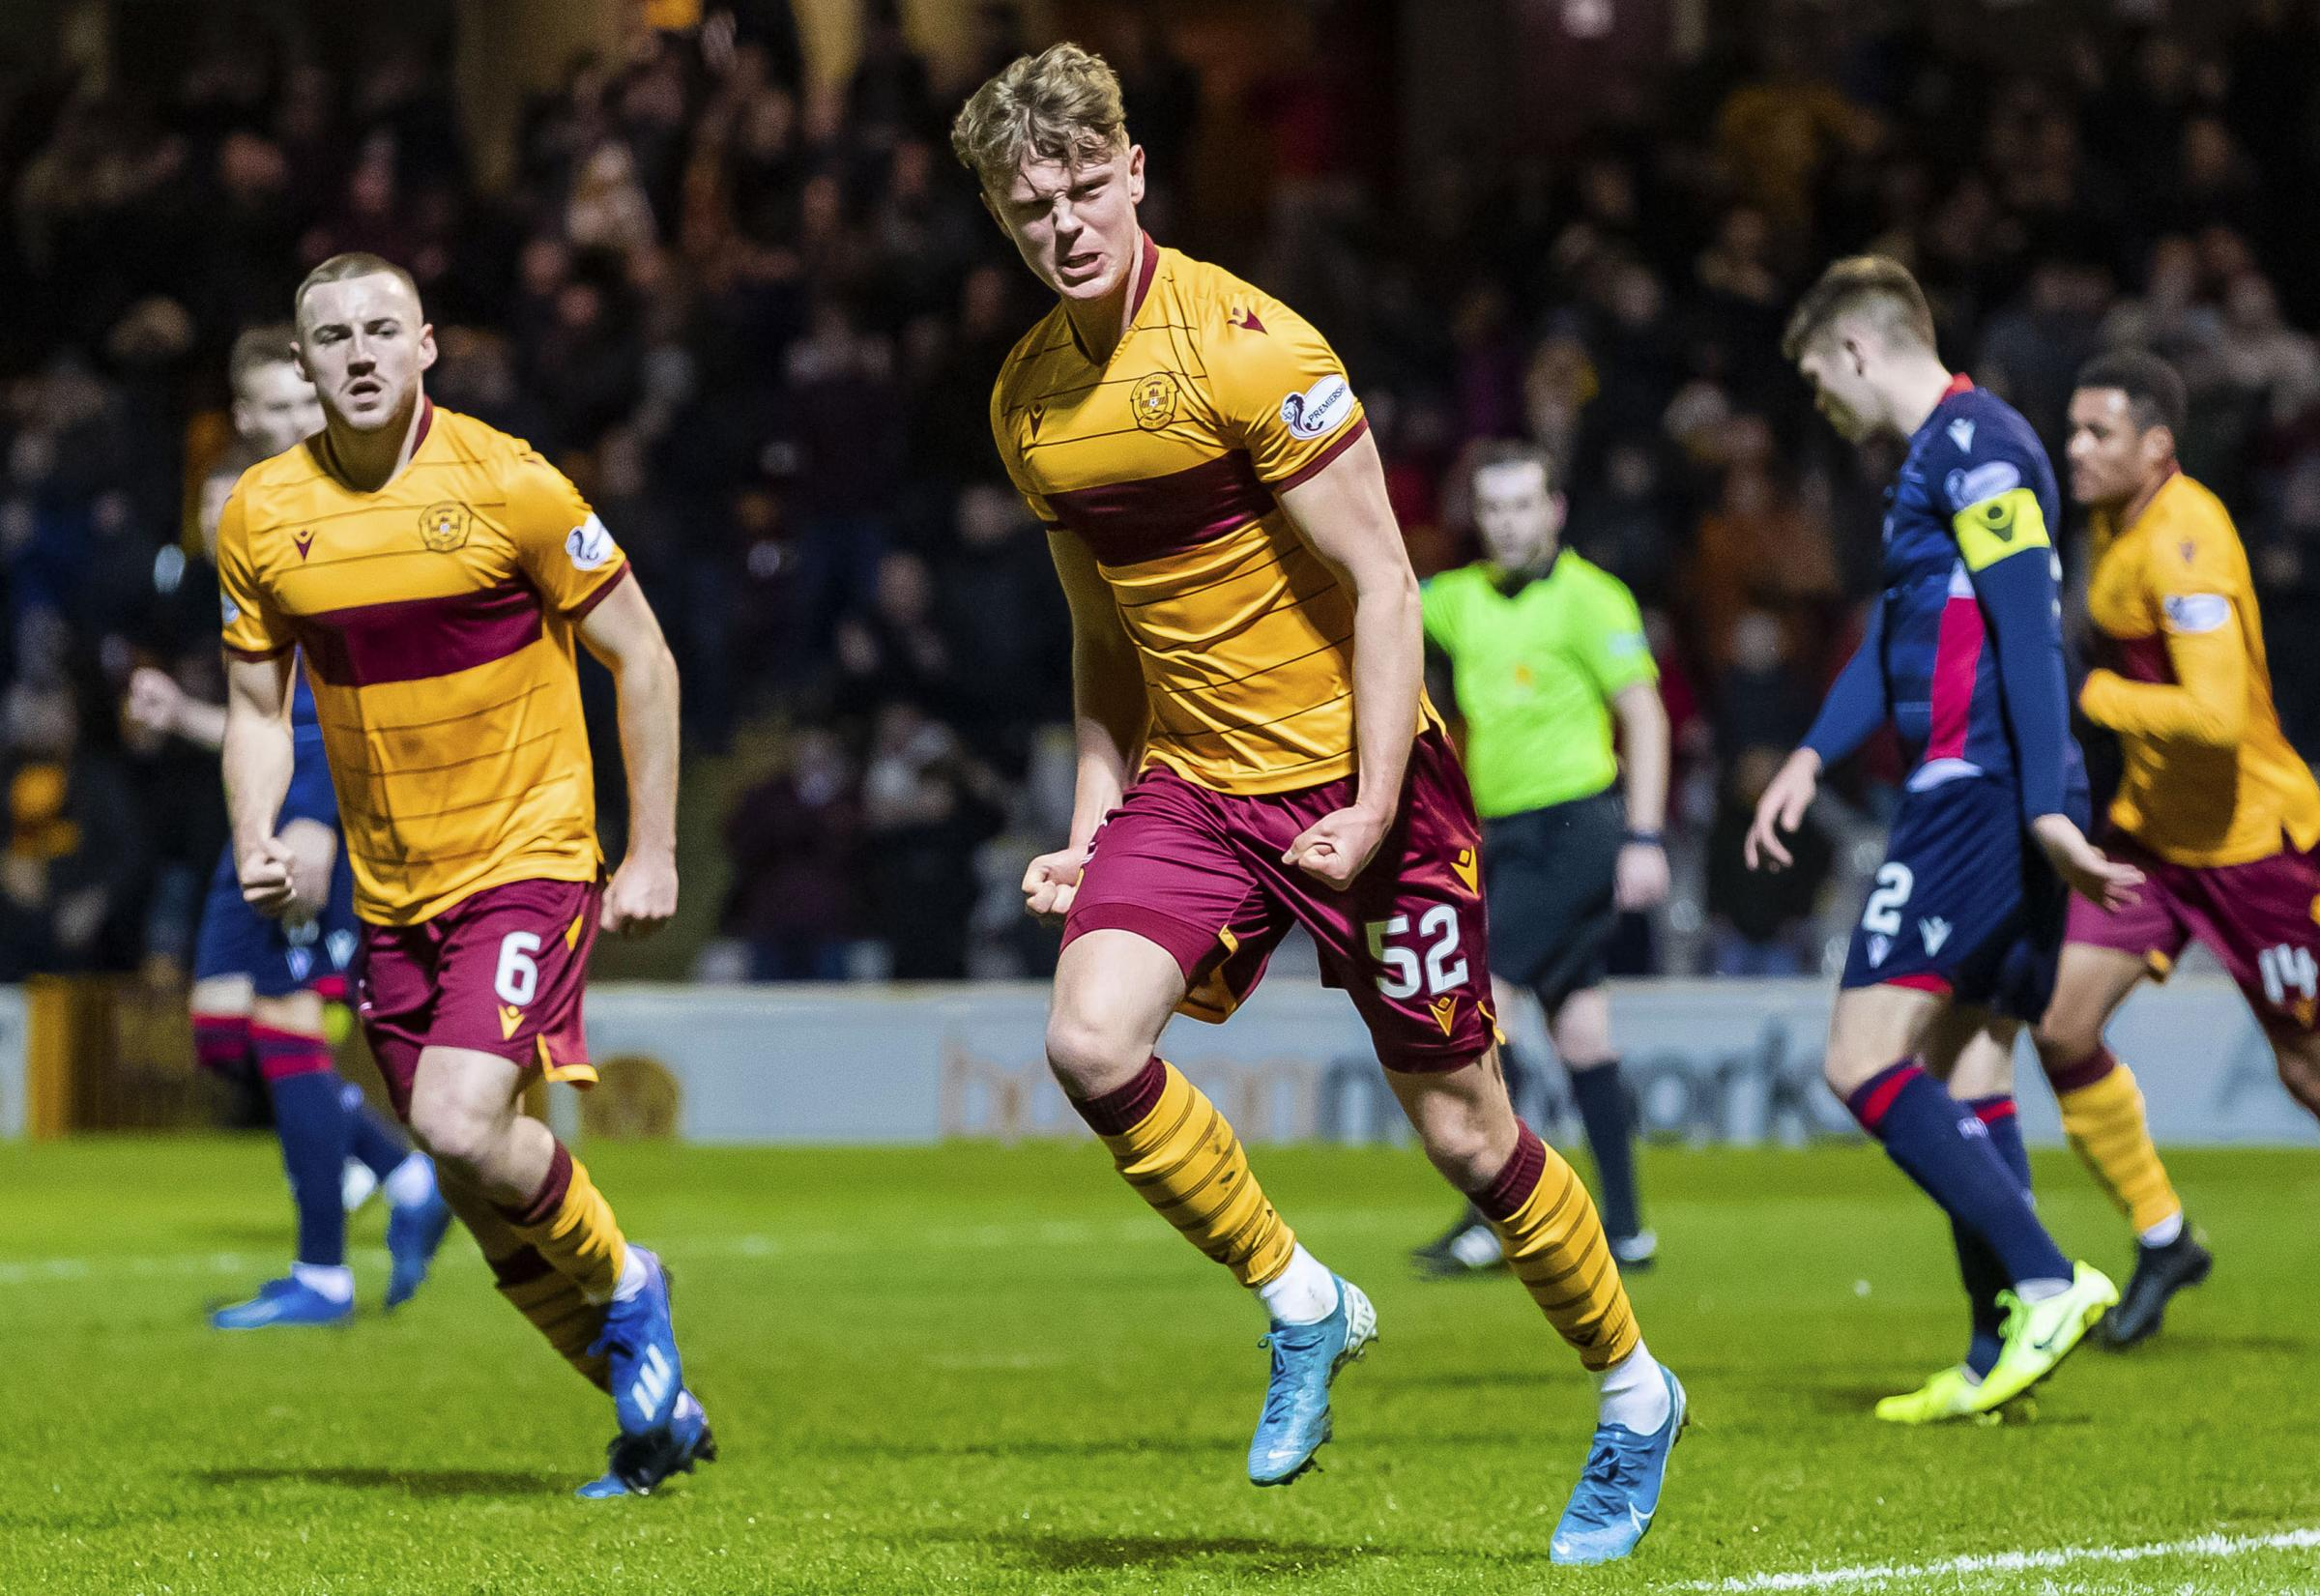 Motherwell confirm signing of Mark O'Hara